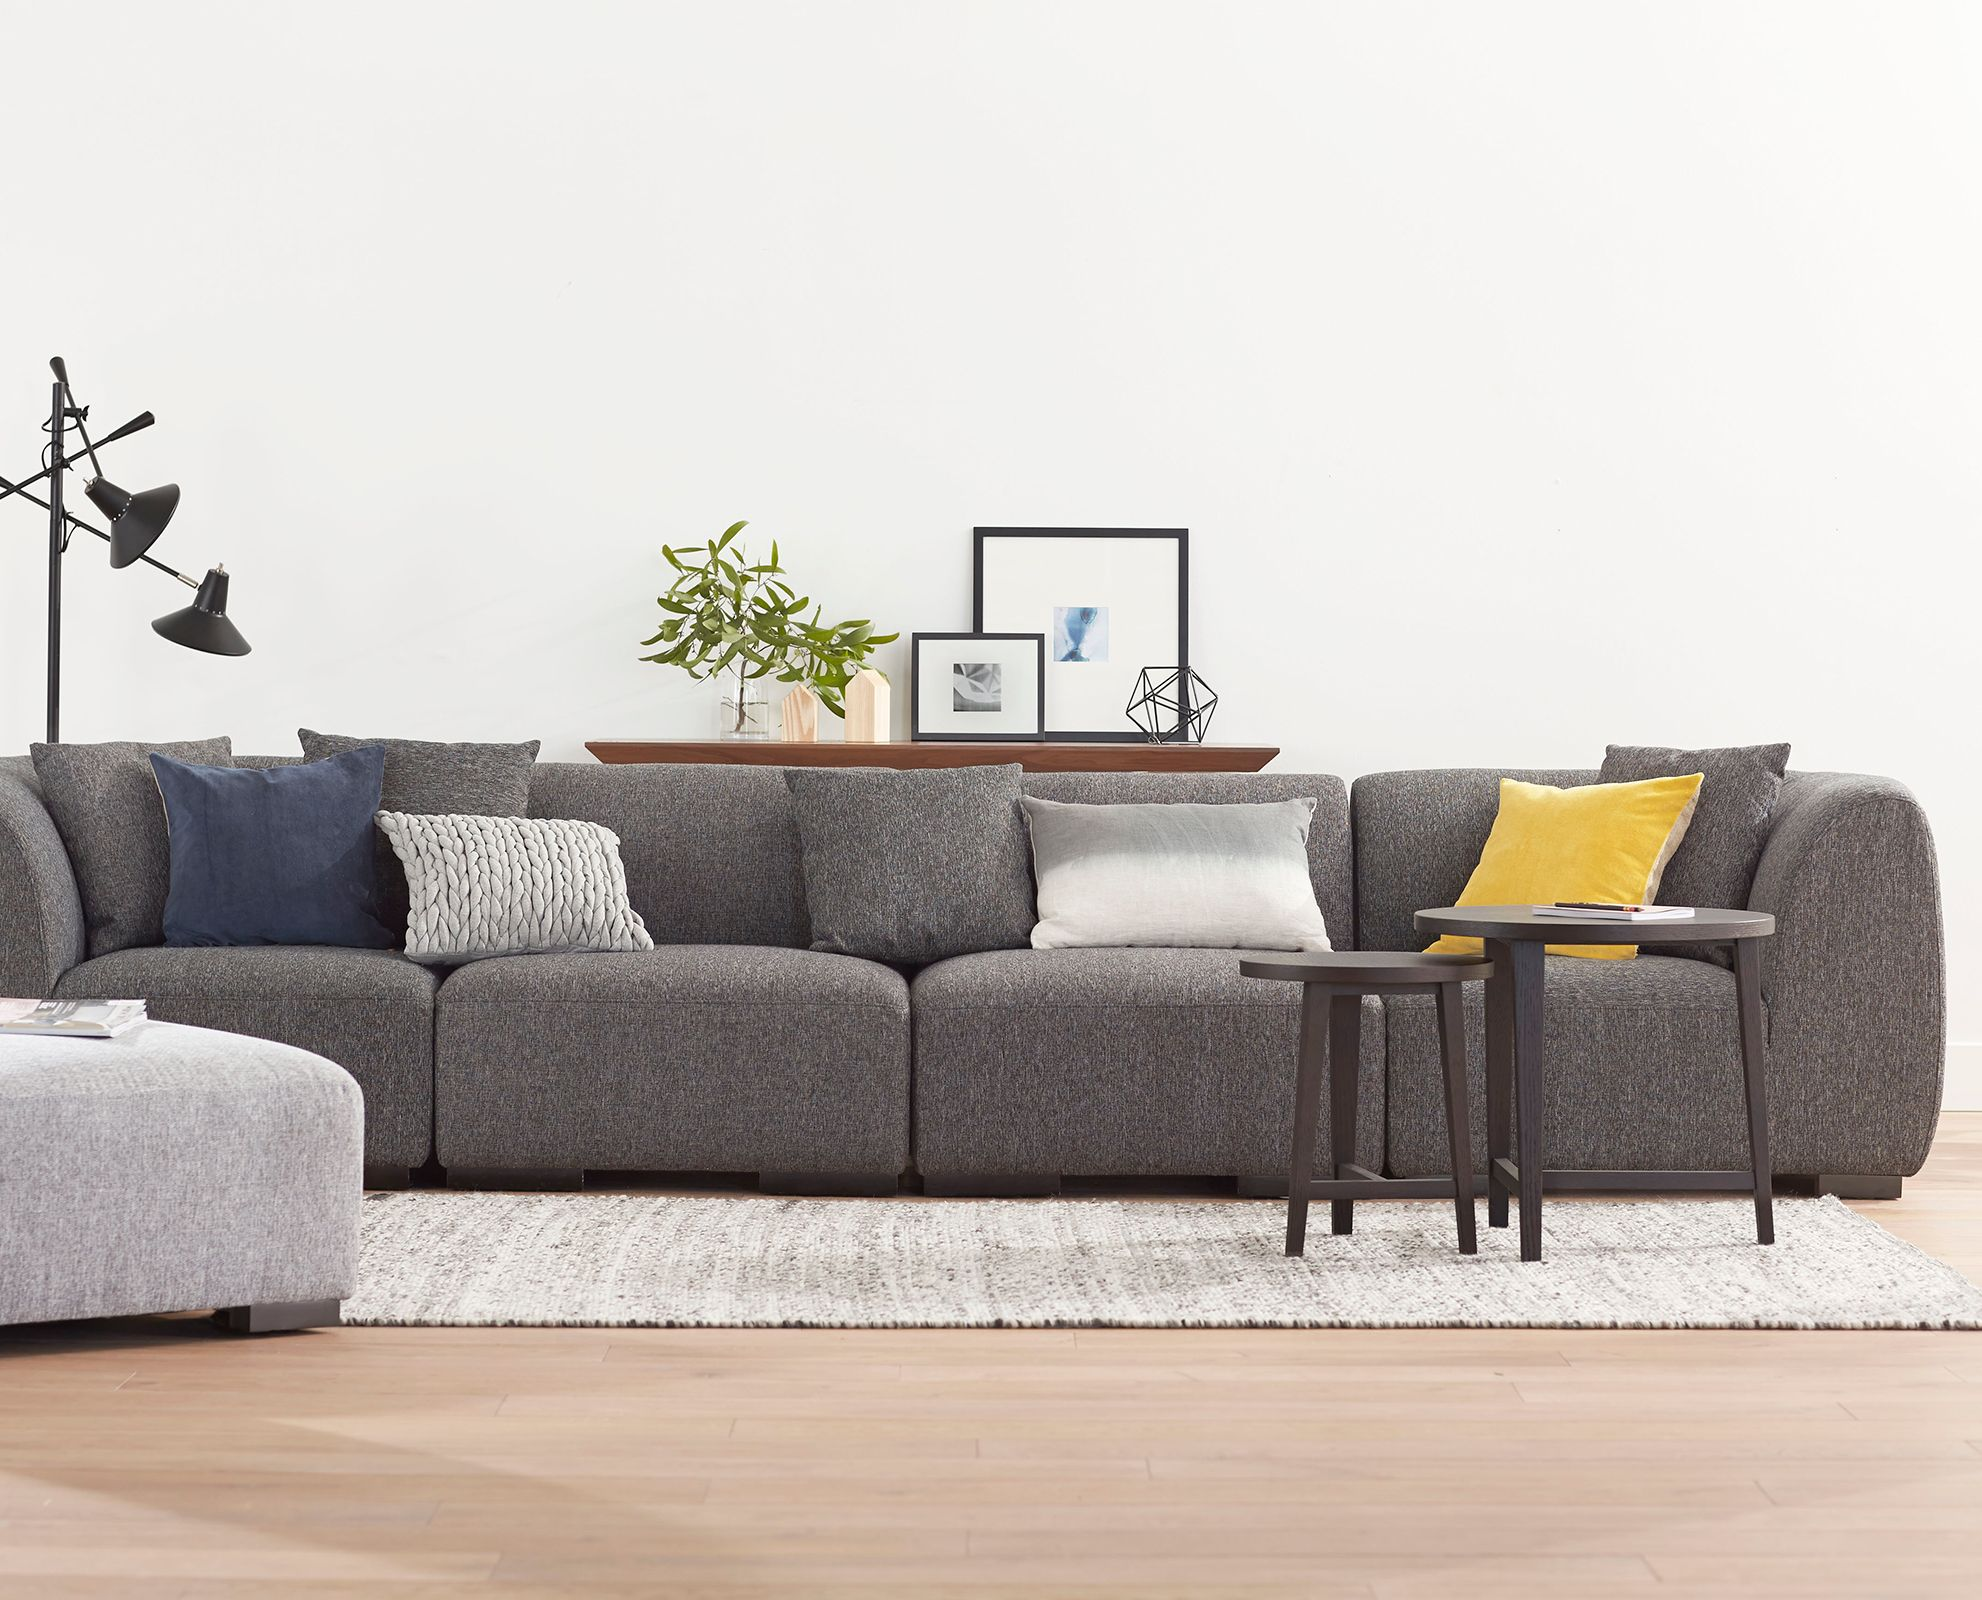 The Kelsey 5 piece modular sectional from Scandinavian Designs